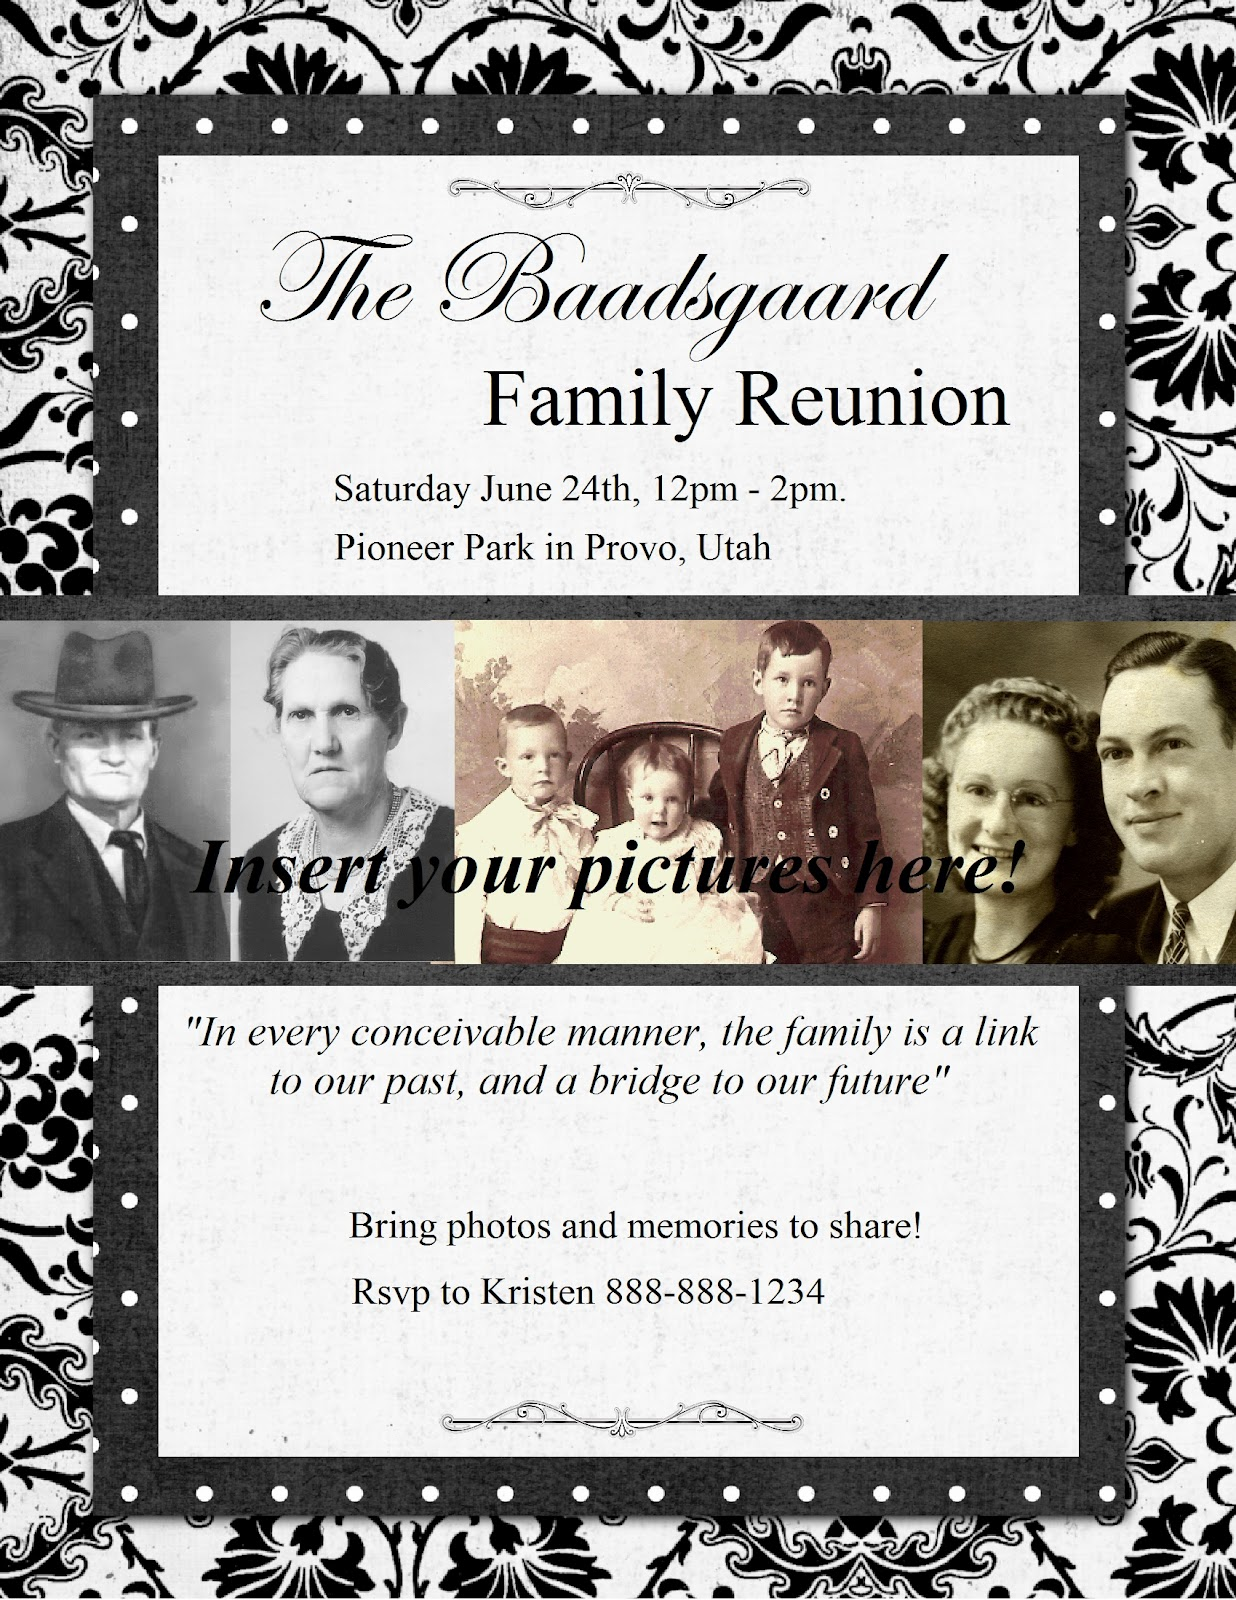 Family Reunion Flyer Template family reunion website templates – Invitations for Family Reunion